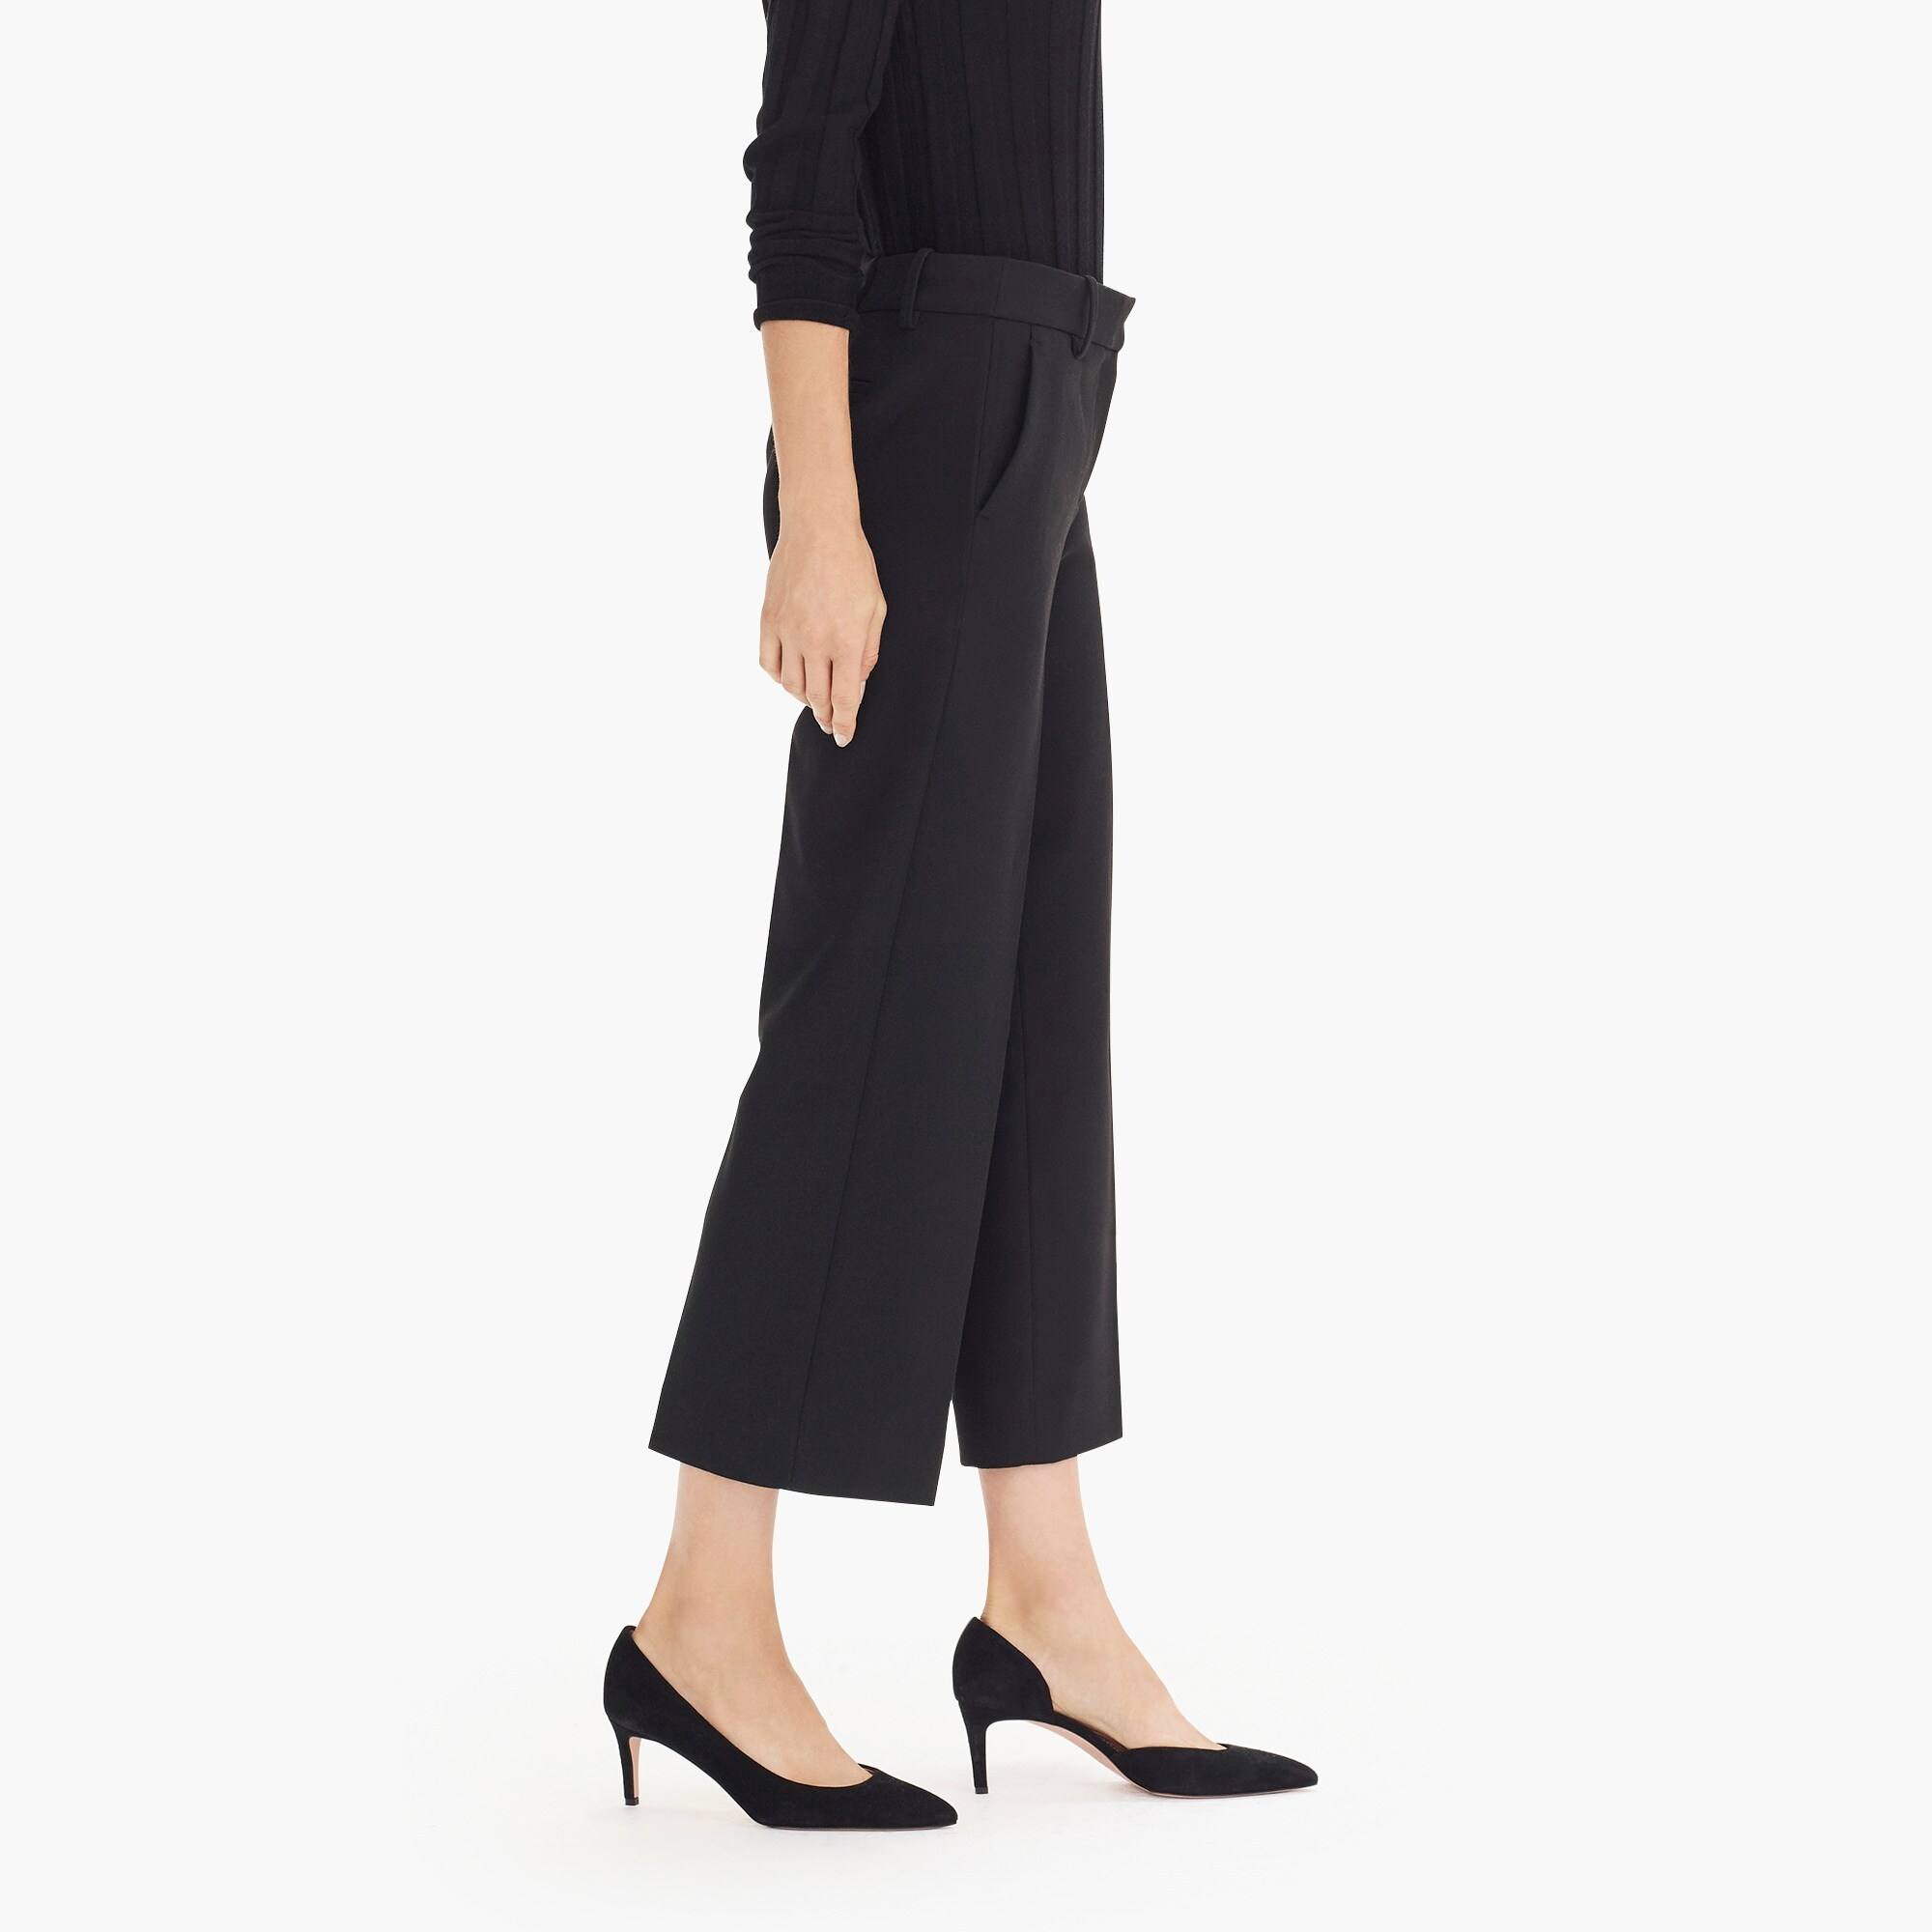 Image 5 for High-rise Peyton wide-leg pant in four-season stretch